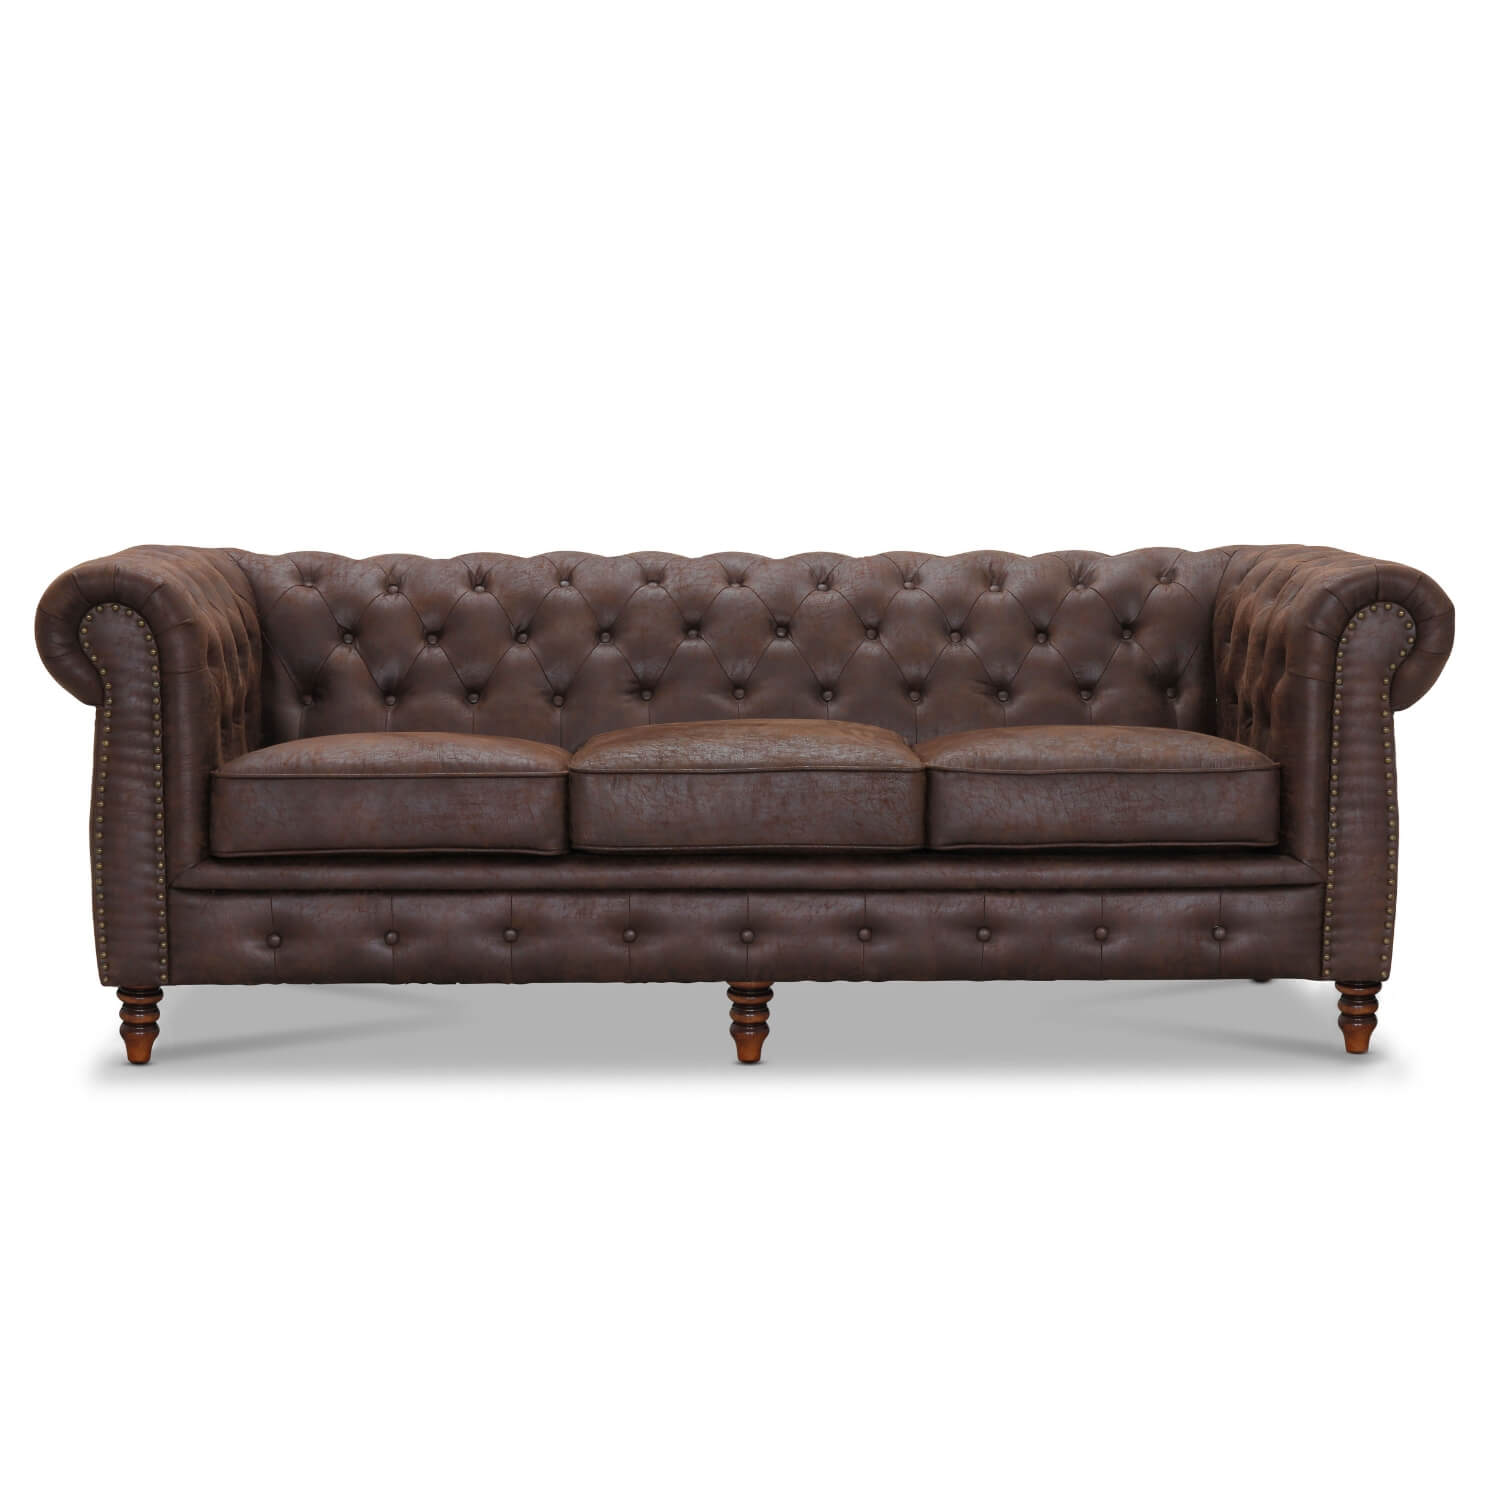 Cambridge 3 pers. sofa - chesterfield sofa brun